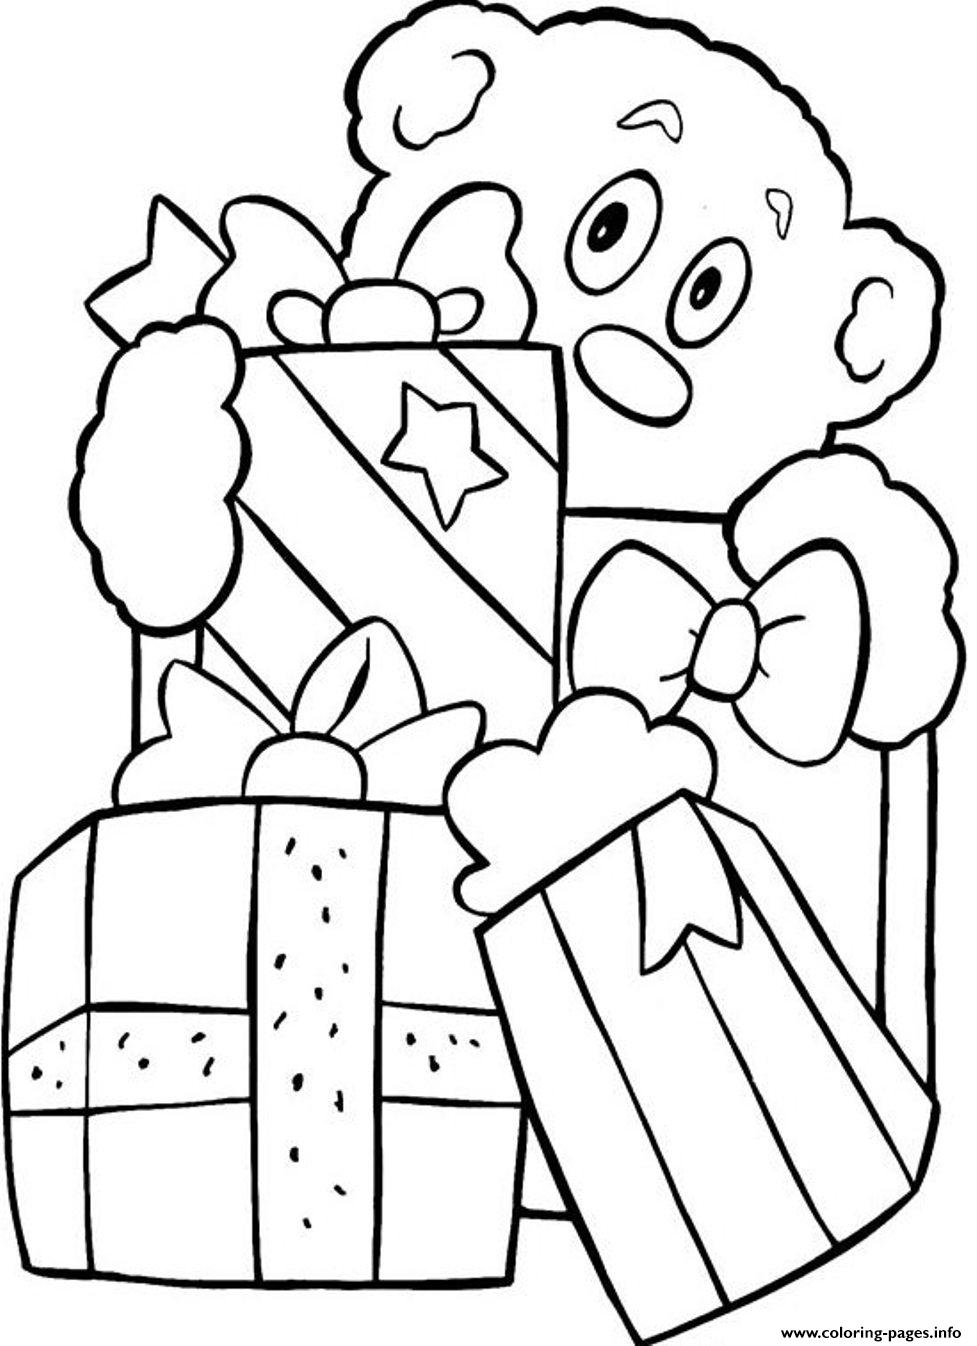 Printable S Christmas Presentsd12b coloring pages